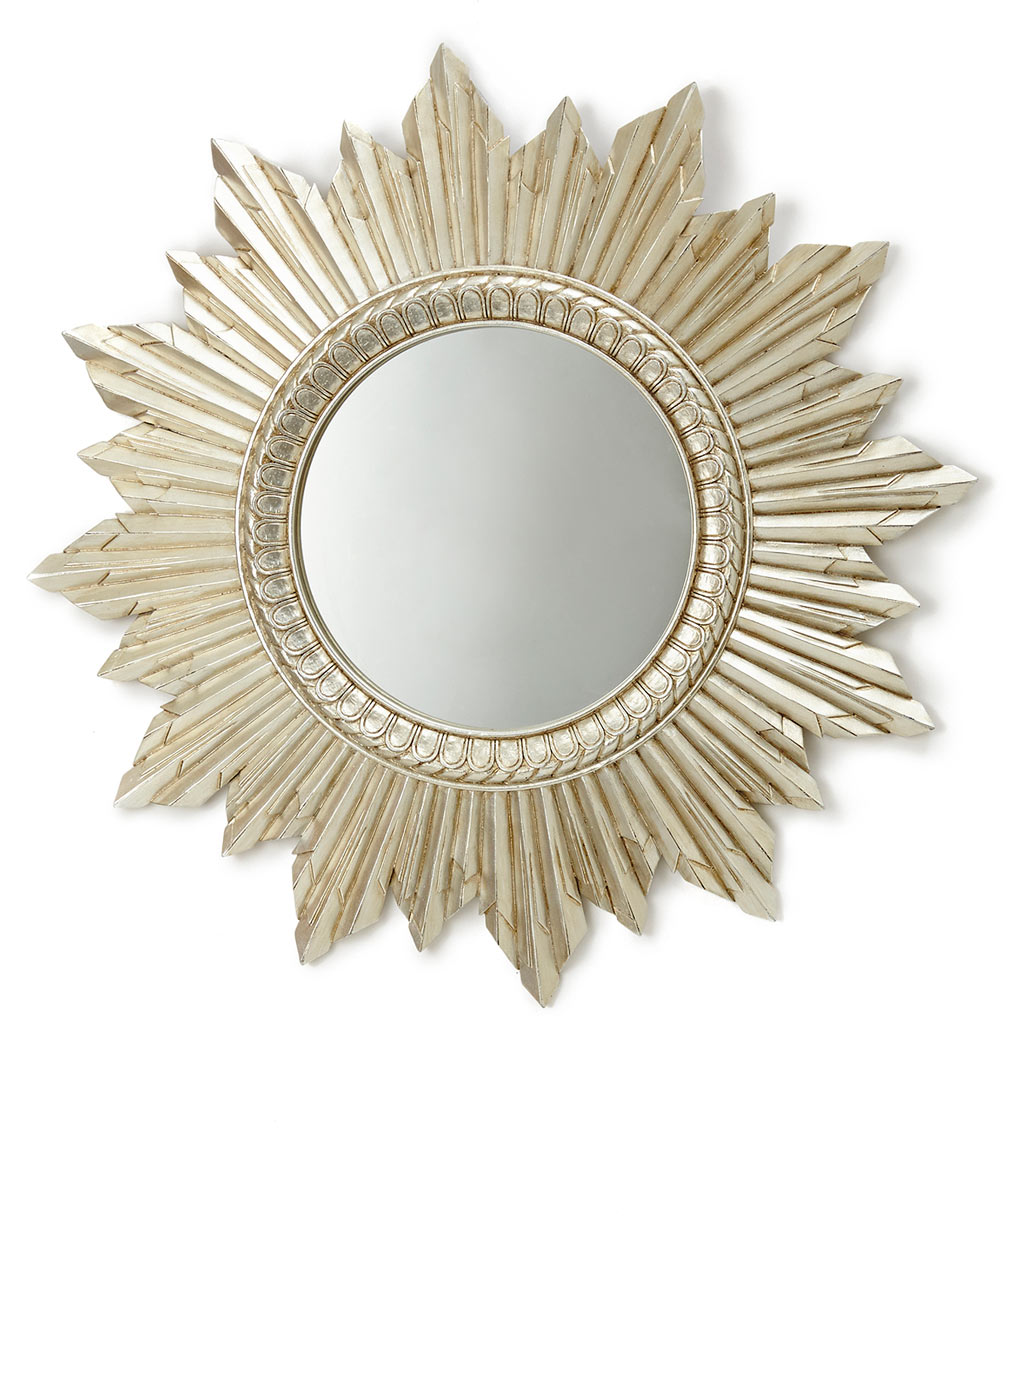 Home Depot Sunburst Mirror | Martha Stewart Sunburst Mirror | Martha Stewart Curtains and Drapes